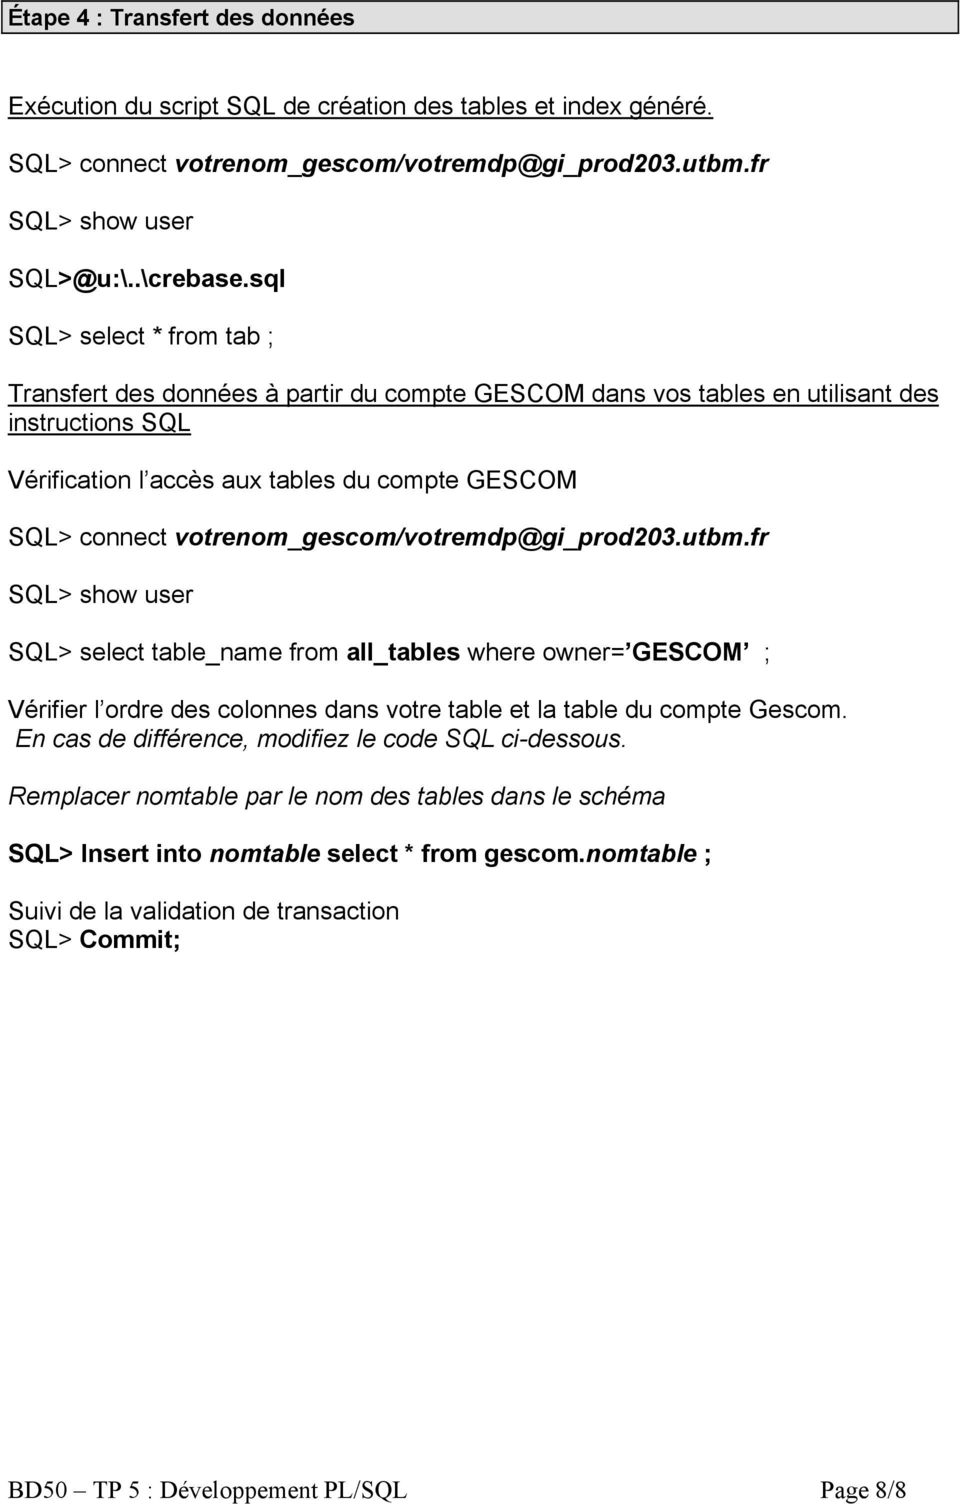 votrenom_gescom/votremdp@gi_prod203.utbm.fr SQL> show user SQL> select table_name from all_tables where owner= GESCOM ; Vérifier l ordre des colonnes dans votre table et la table du compte Gescom.